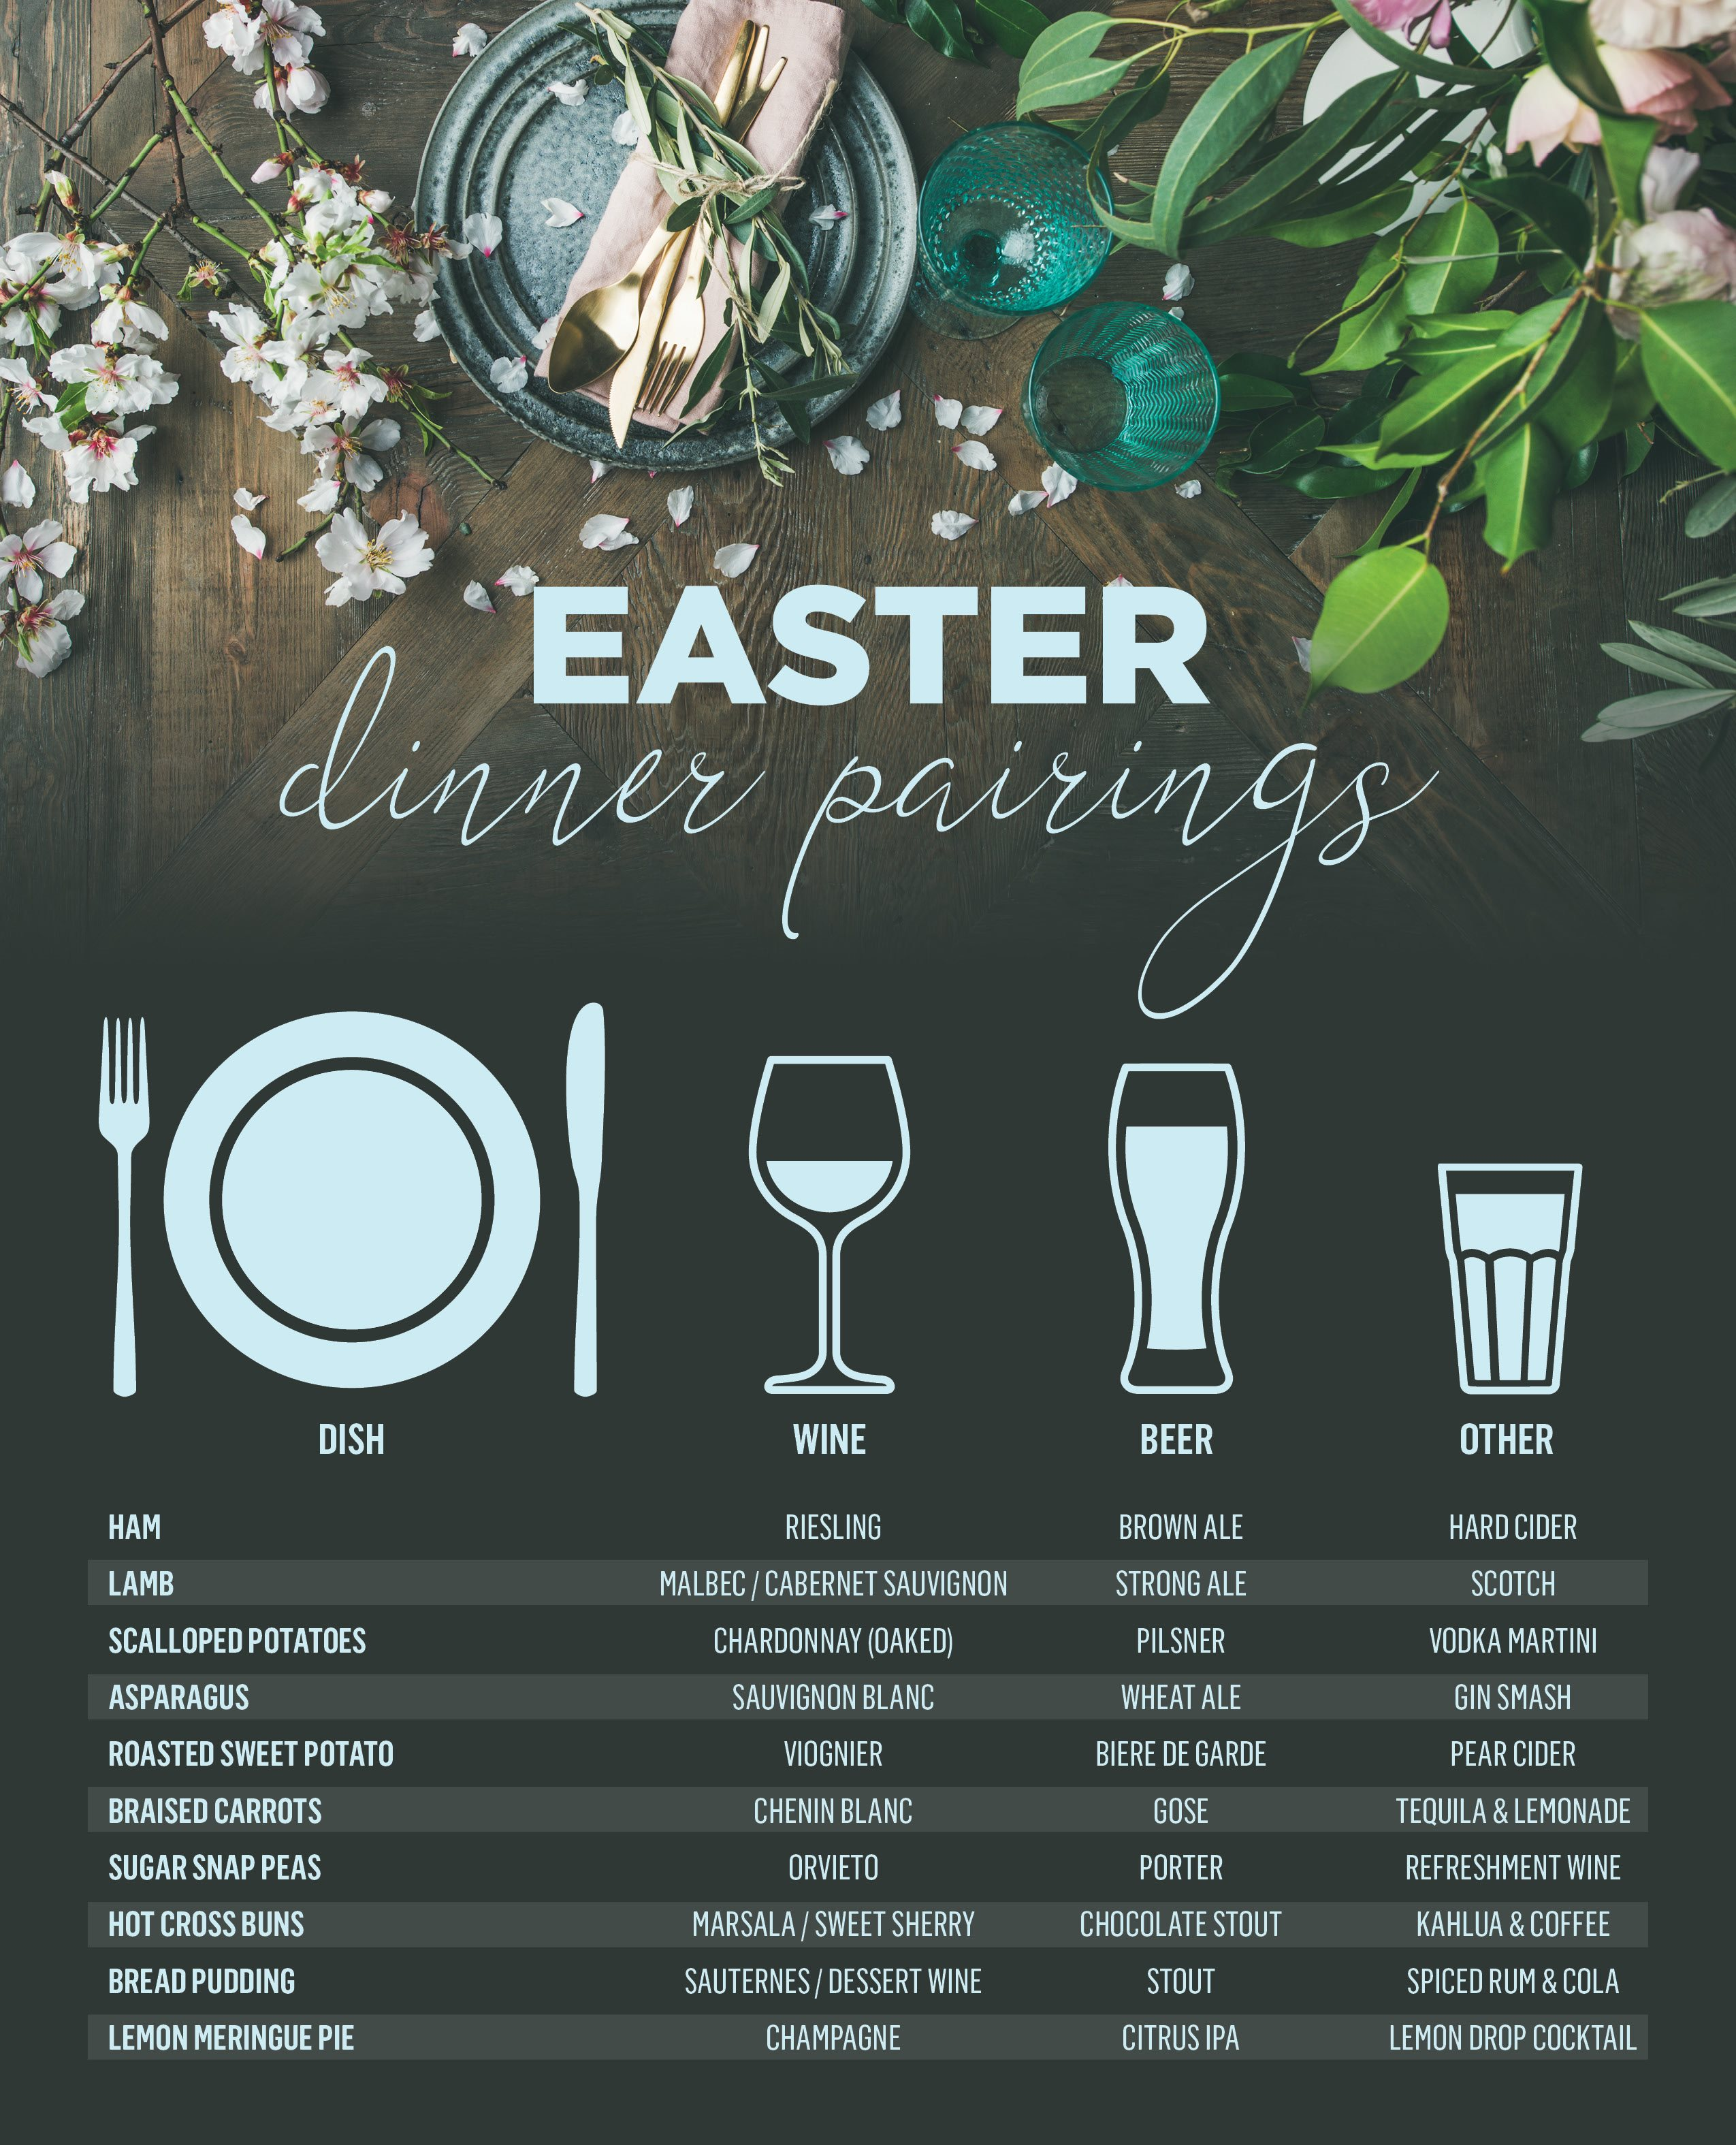 Easter Dinner Pairings Infographic E